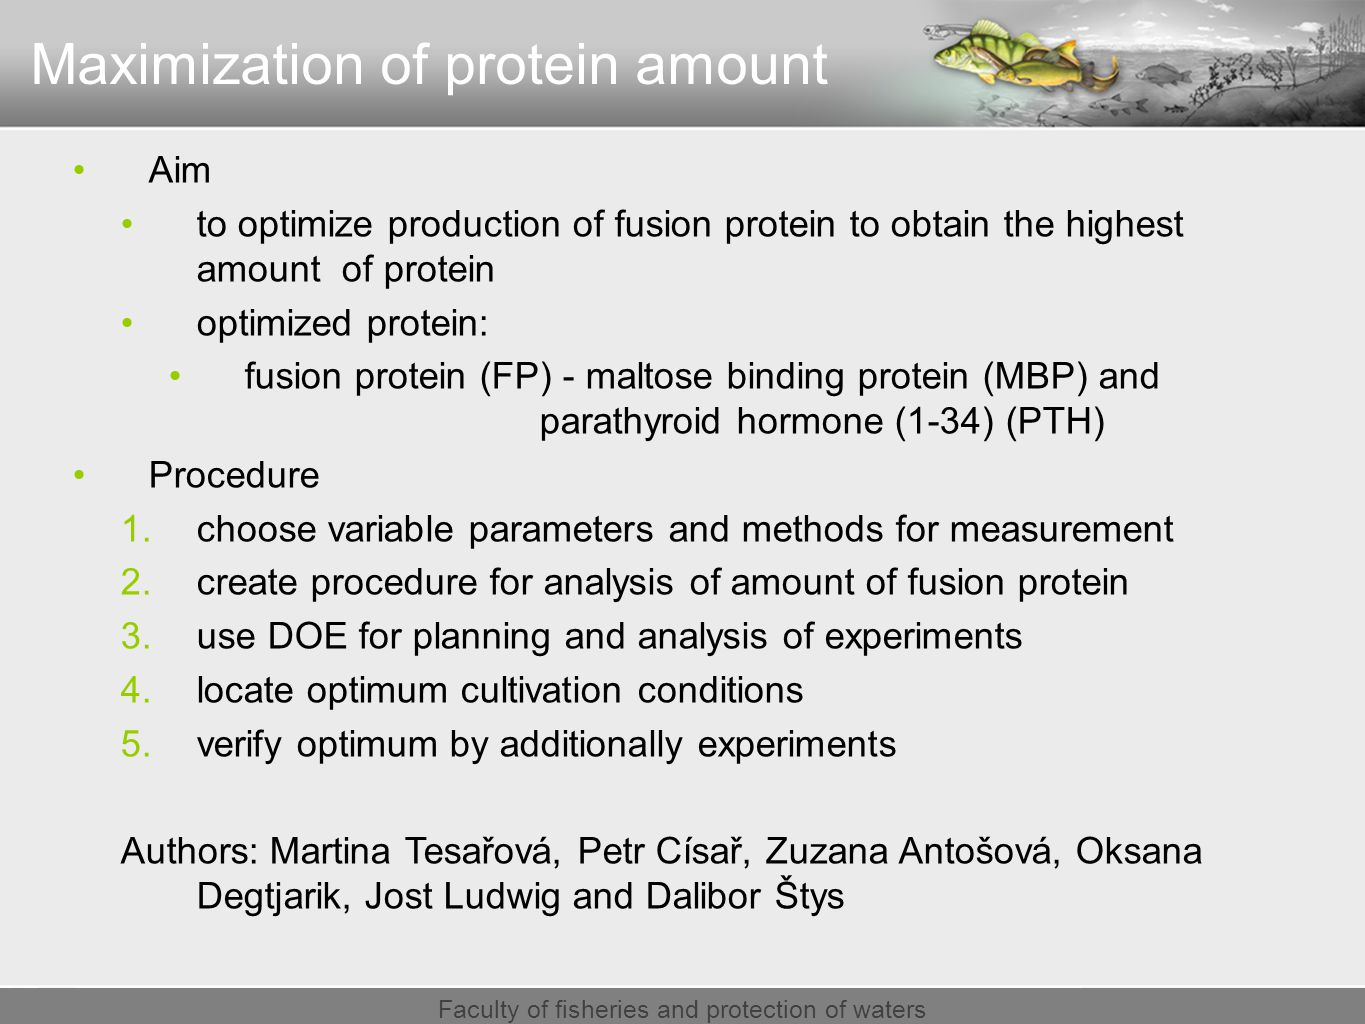 Faculty of fisheries and protection of waters Maximization of protein amount Aim to optimize production of fusion protein to obtain the highest amount of protein optimized protein: fusion protein (FP) - maltose binding protein (MBP) and parathyroid hormone (1-34) (PTH) Procedure 1.choose variable parameters and methods for measurement 2.create procedure for analysis of amount of fusion protein 3.use DOE for planning and analysis of experiments 4.locate optimum cultivation conditions 5.verify optimum by additionally experiments Authors: Martina Tesařová, Petr Císař, Zuzana Antošová, Oksana Degtjarik, Jost Ludwig and Dalibor Štys